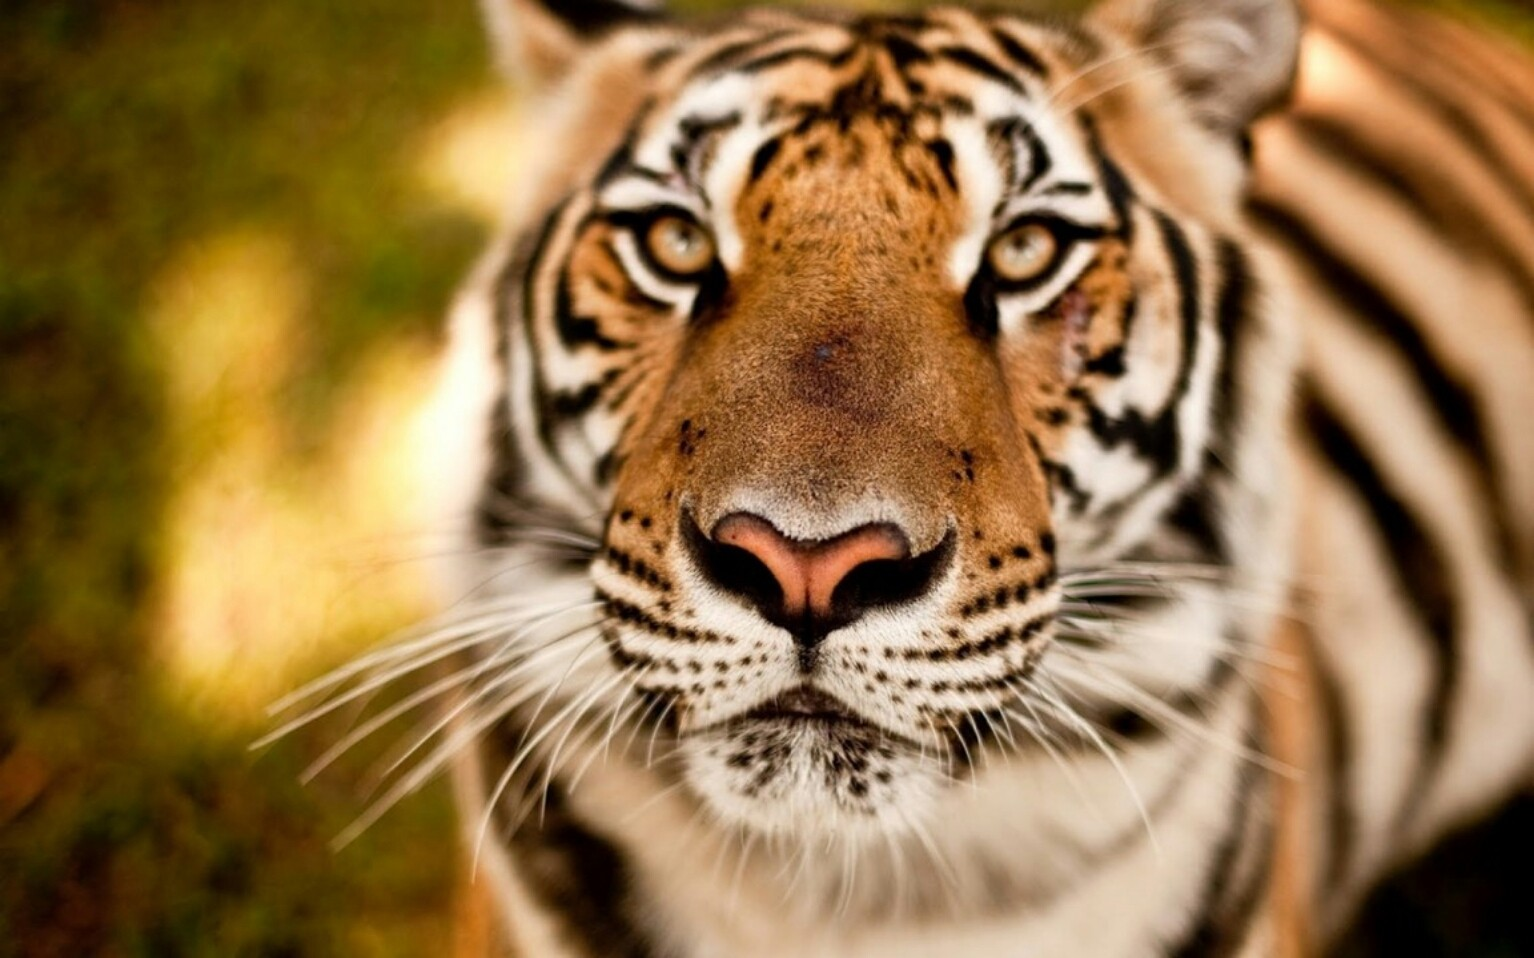 This is a real life tiger